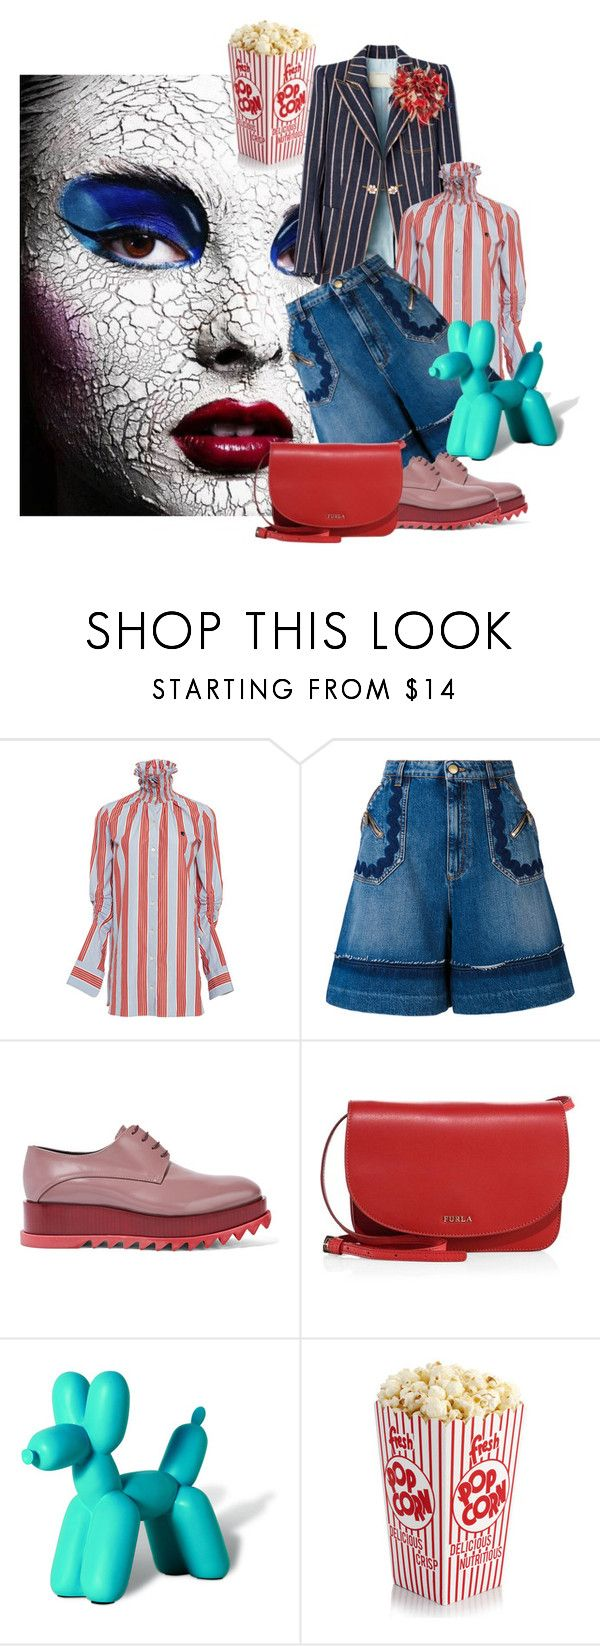 """""""Send in The Clown"""" by the-house-of-kasin ❤ liked on Polyvore featuring Carven, Sonia Rykiel, Jil Sander, Furla, Imm Living, stripes and circus"""